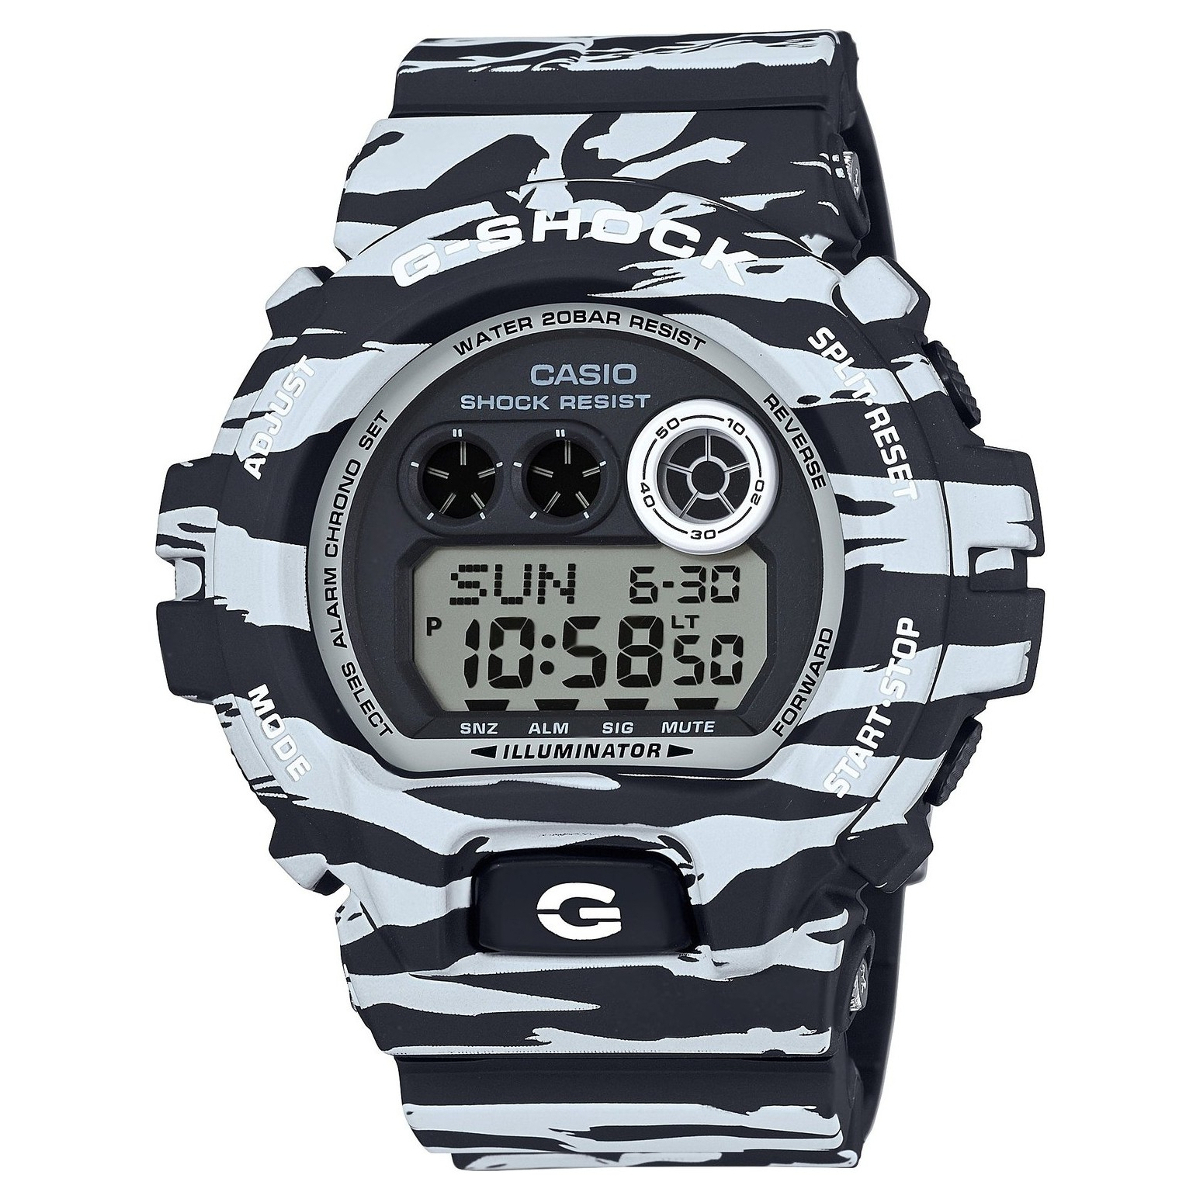 Casio G-shock GD-X6900BW-1E casio gd 120cm 5e